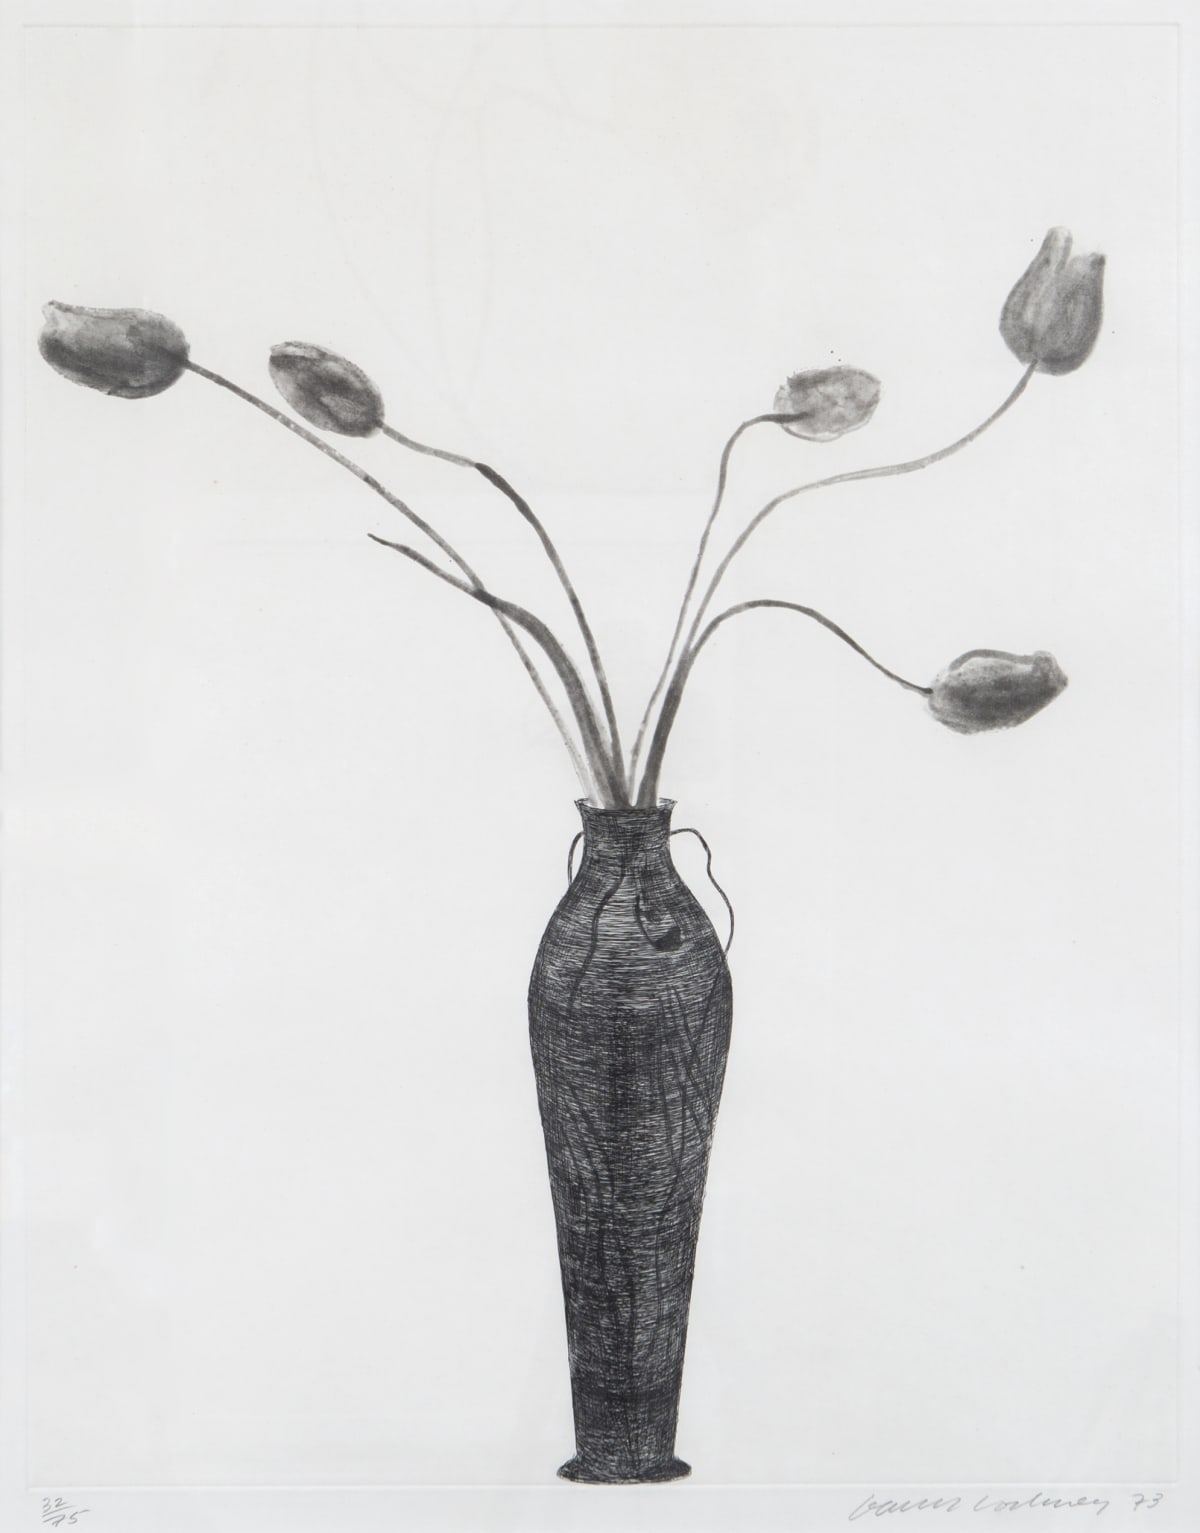 David Hockney Tulips, 1973 Etching and Aquatint Image: 68 x 54 cm / Paper: 92 x 71.5 cm Edition of 75 plus 16 proofs